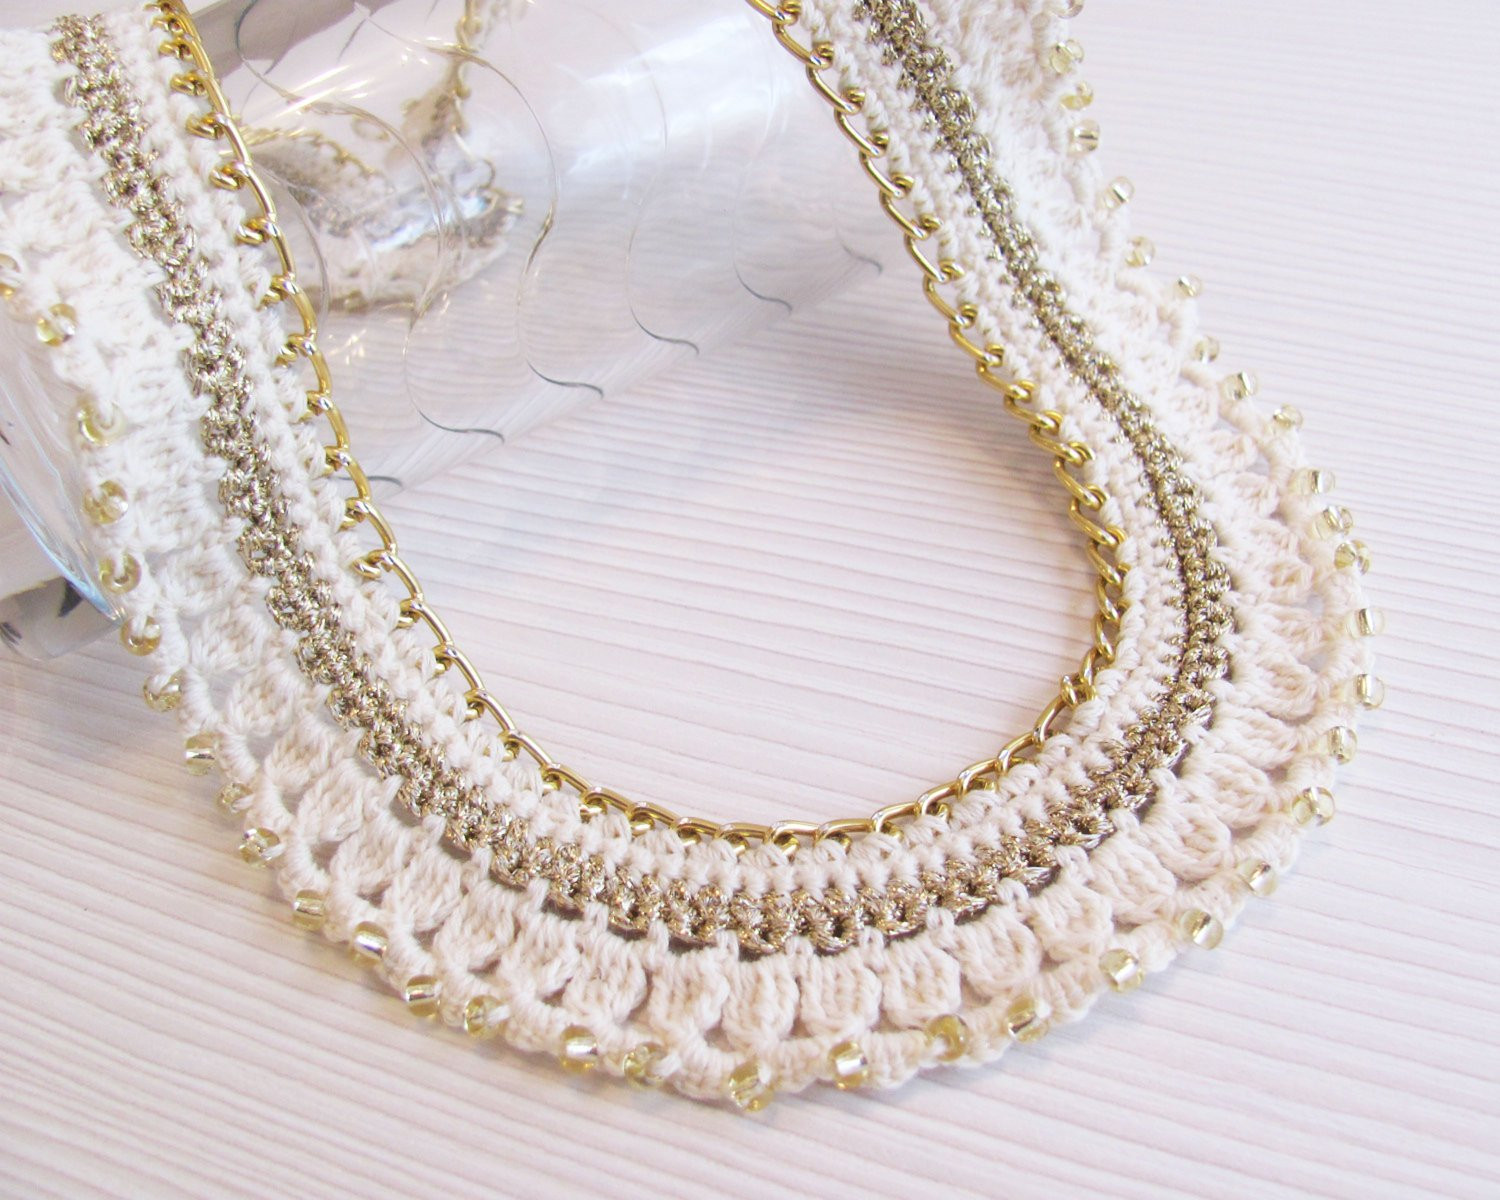 f white gold crocheted collar chain necklace gold by